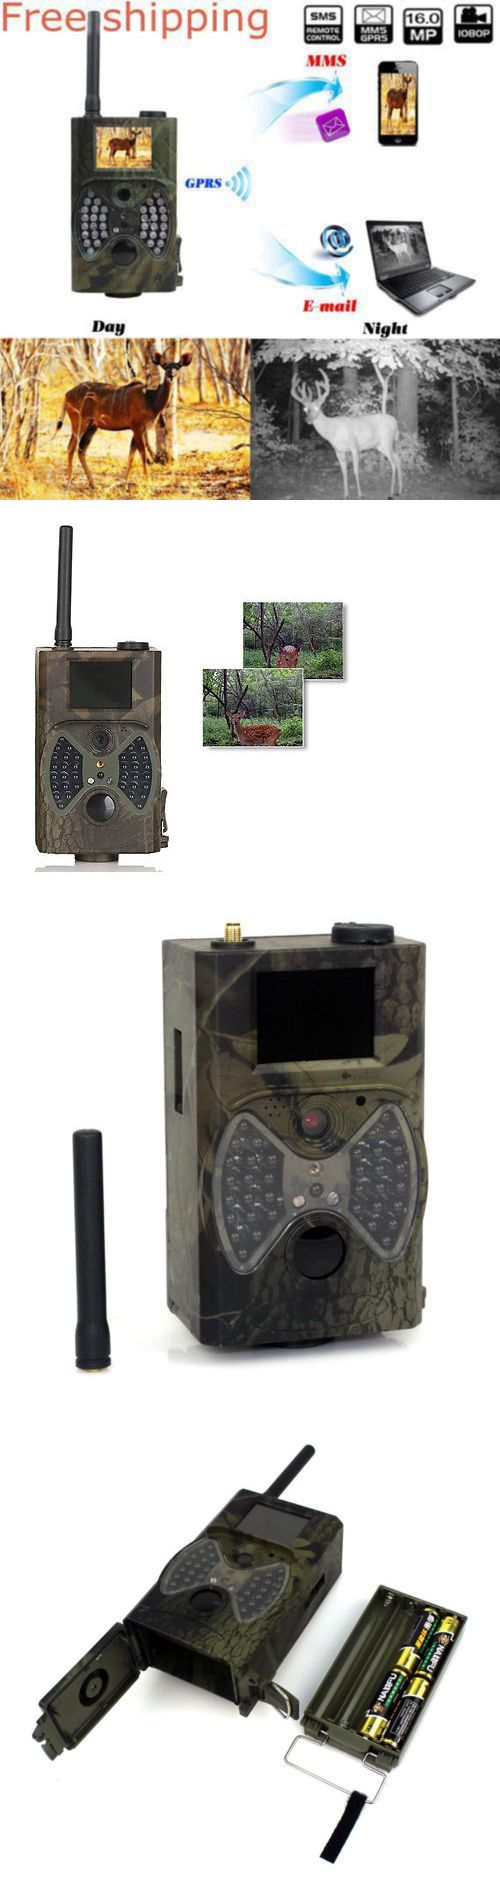 Game and Trail Cameras 52505: Suntek Hunting Trail Camera Video Scouting Infrared Game Hd 16Mp Mms Gprs Hc350m -> BUY IT NOW ONLY: $89.9 on eBay!